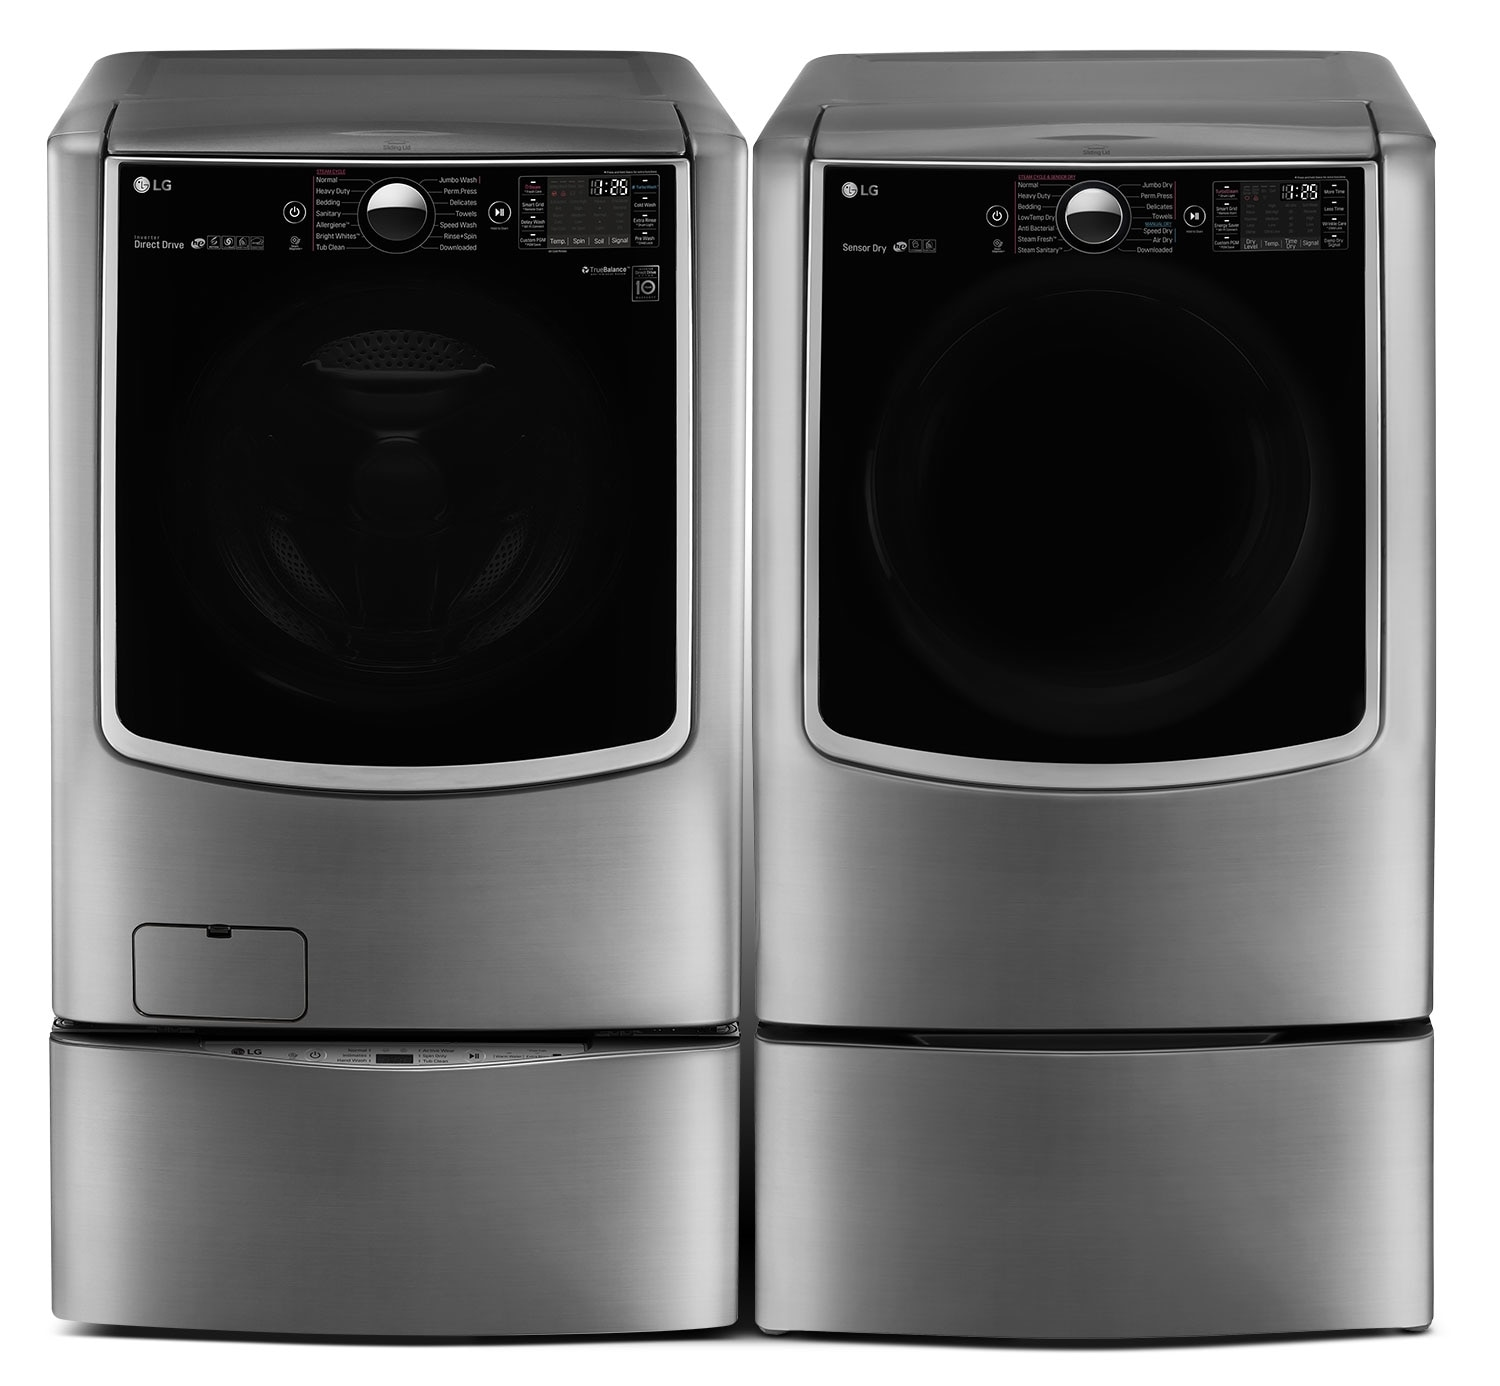 Washers and Dryers - LG TWIN Wash™ 6.0 Cu. Ft. Washer, Pedestal Washer and 9.0 Cu. Ft. Electric Dryer – Graphite Steel